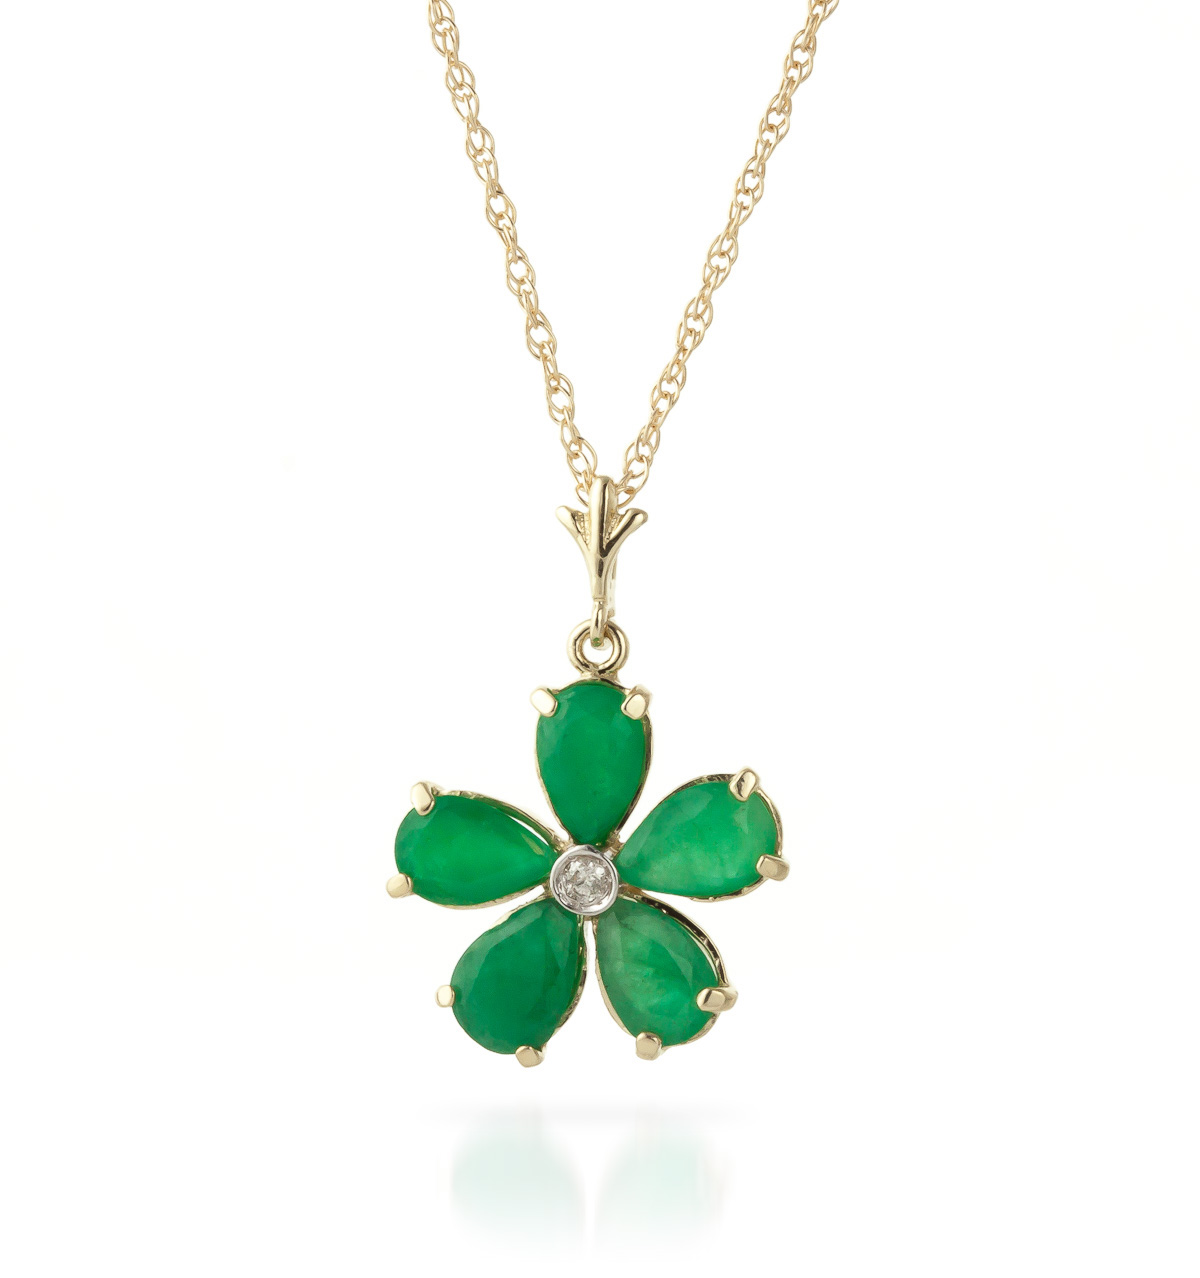 Emerald and Diamond Flower Petal Pendant Necklace 2.2ctw in 9ct Gold